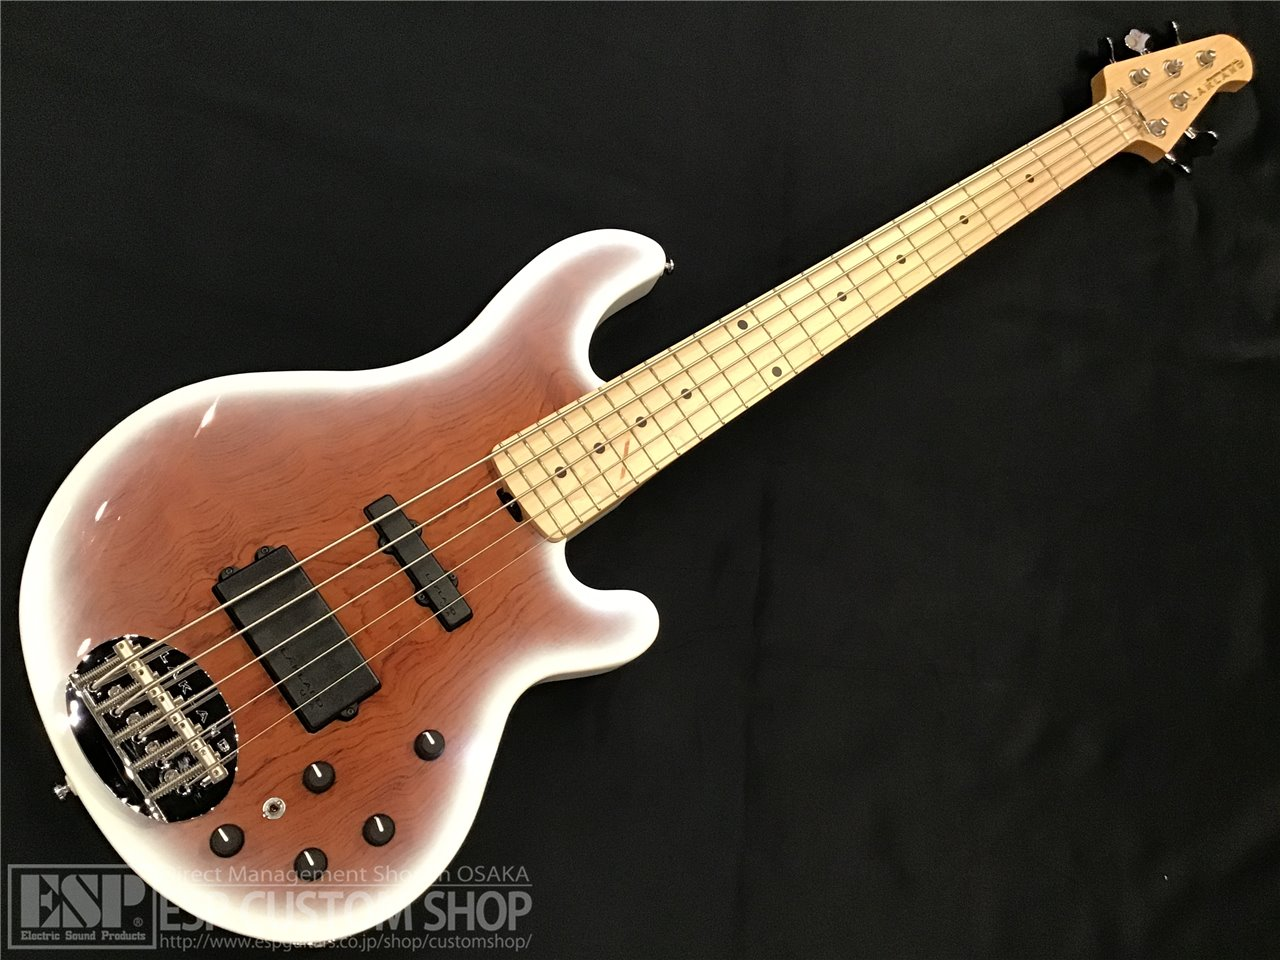 【即納可能】Lakland SL55-94 Deluxe Bubinga / Snow White Sunburst/Maple FB 大阪店